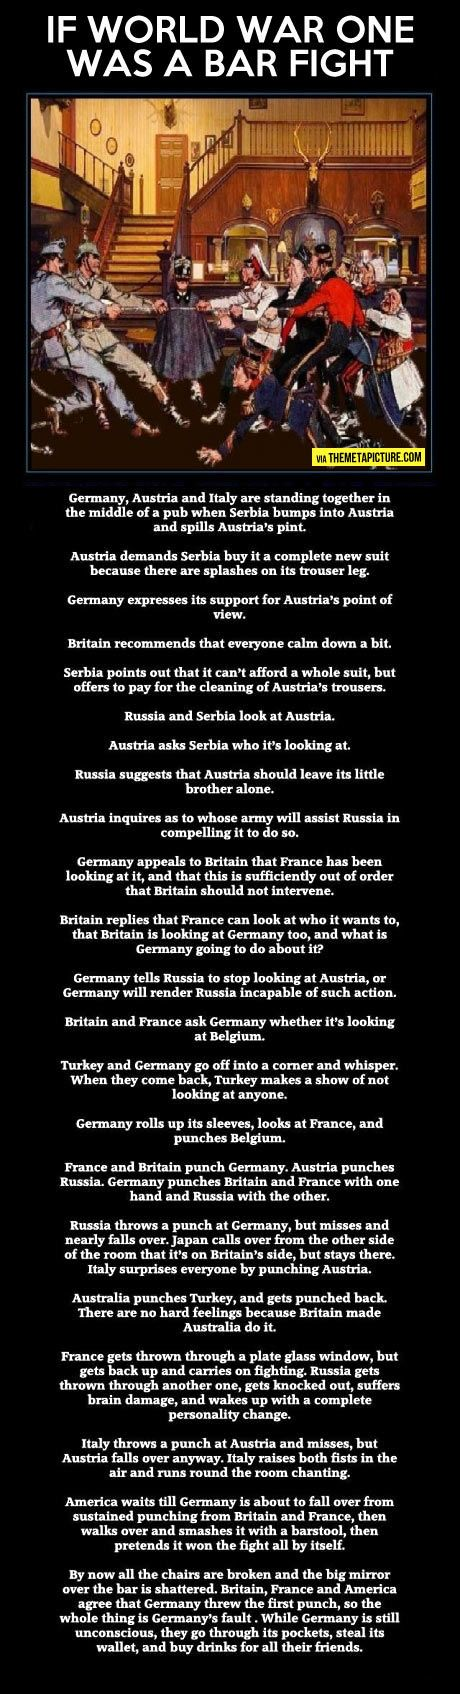 If World War One was a bar fight // this is how we should have studied it in school